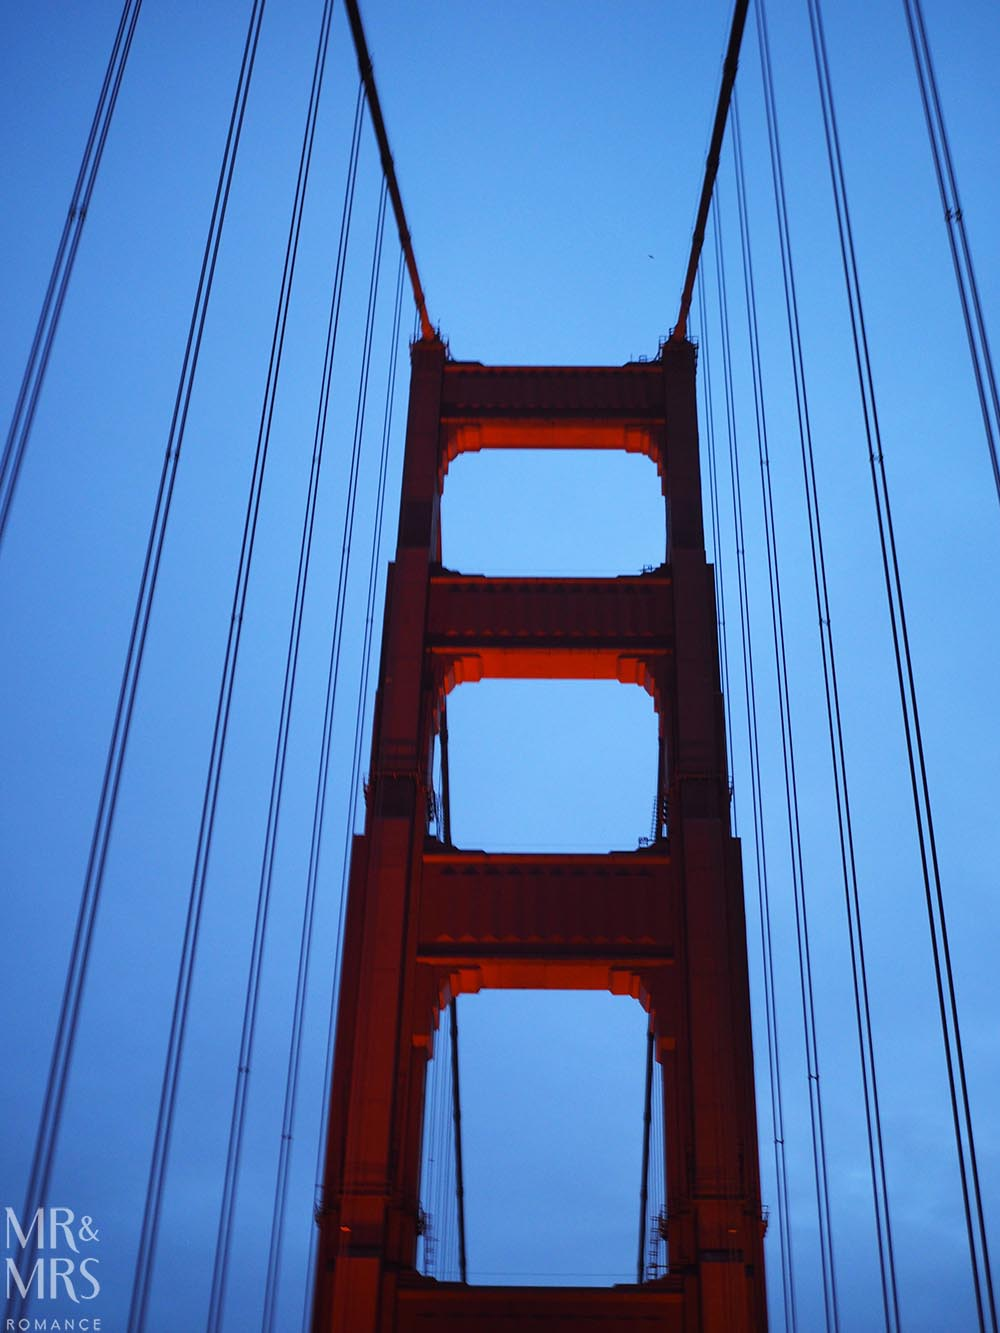 San Francisco Nicknames - Golden Gate Bridge